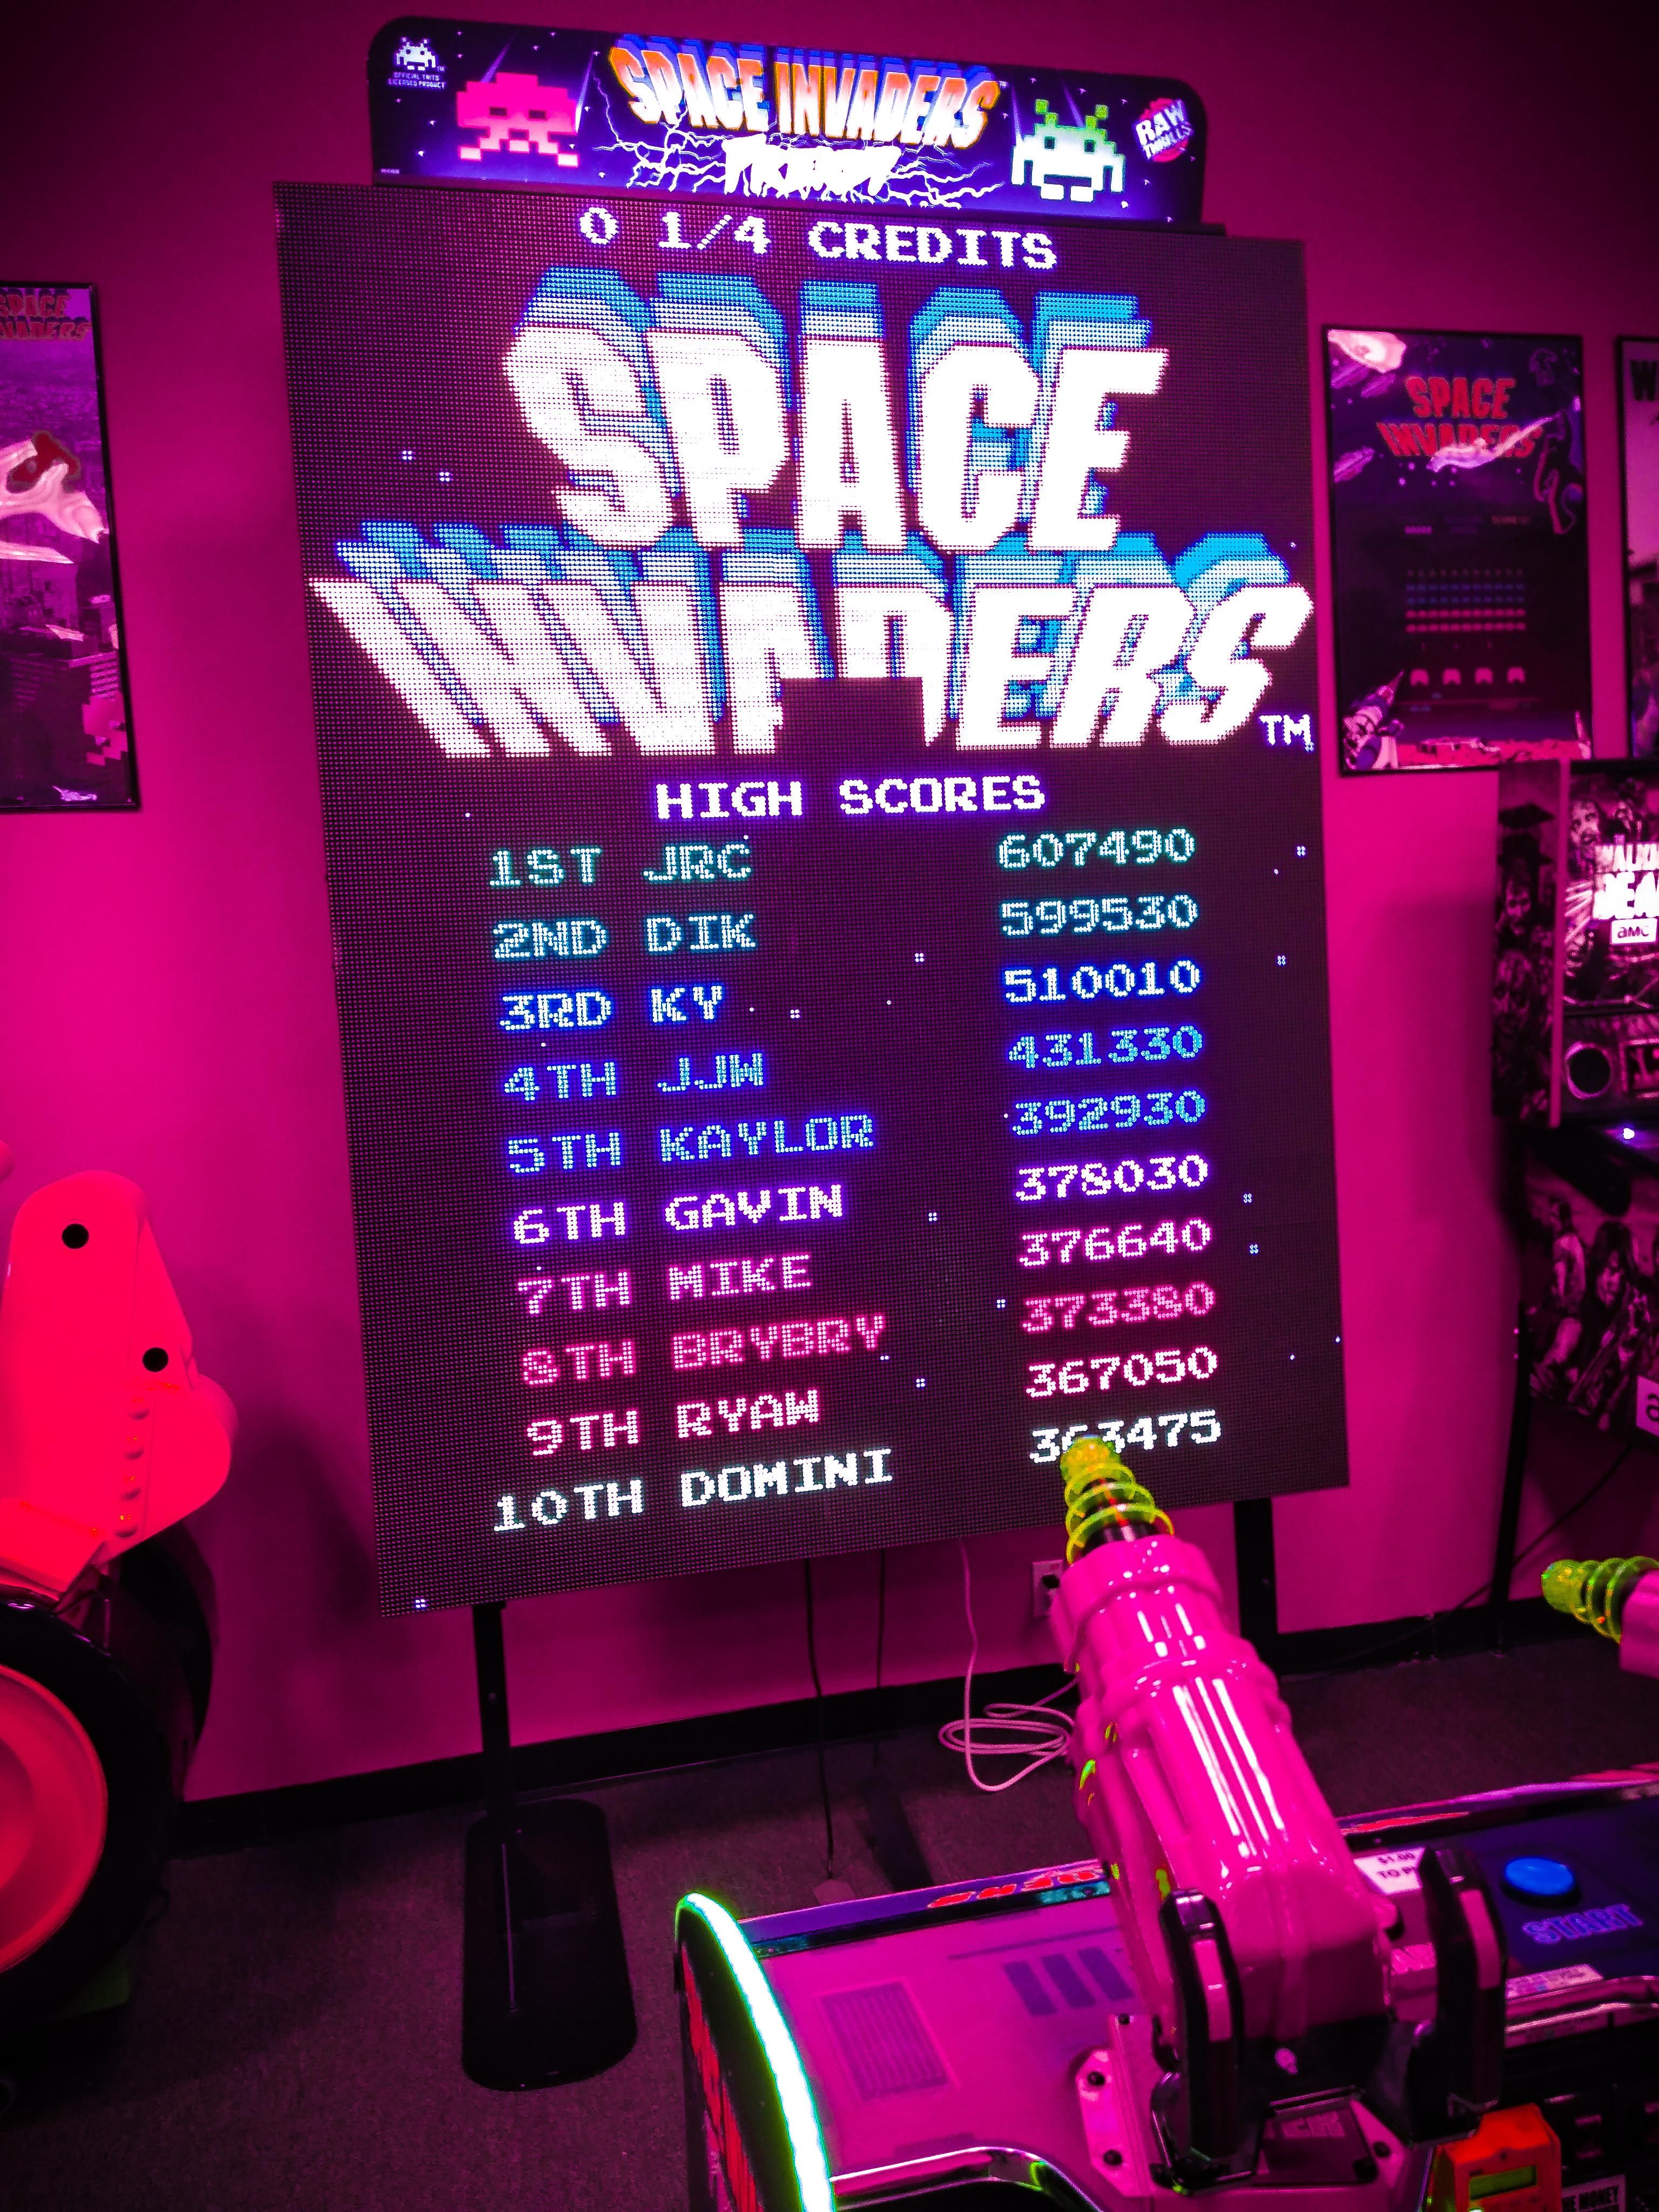 2019 Space Invaders Classic games, Digital text